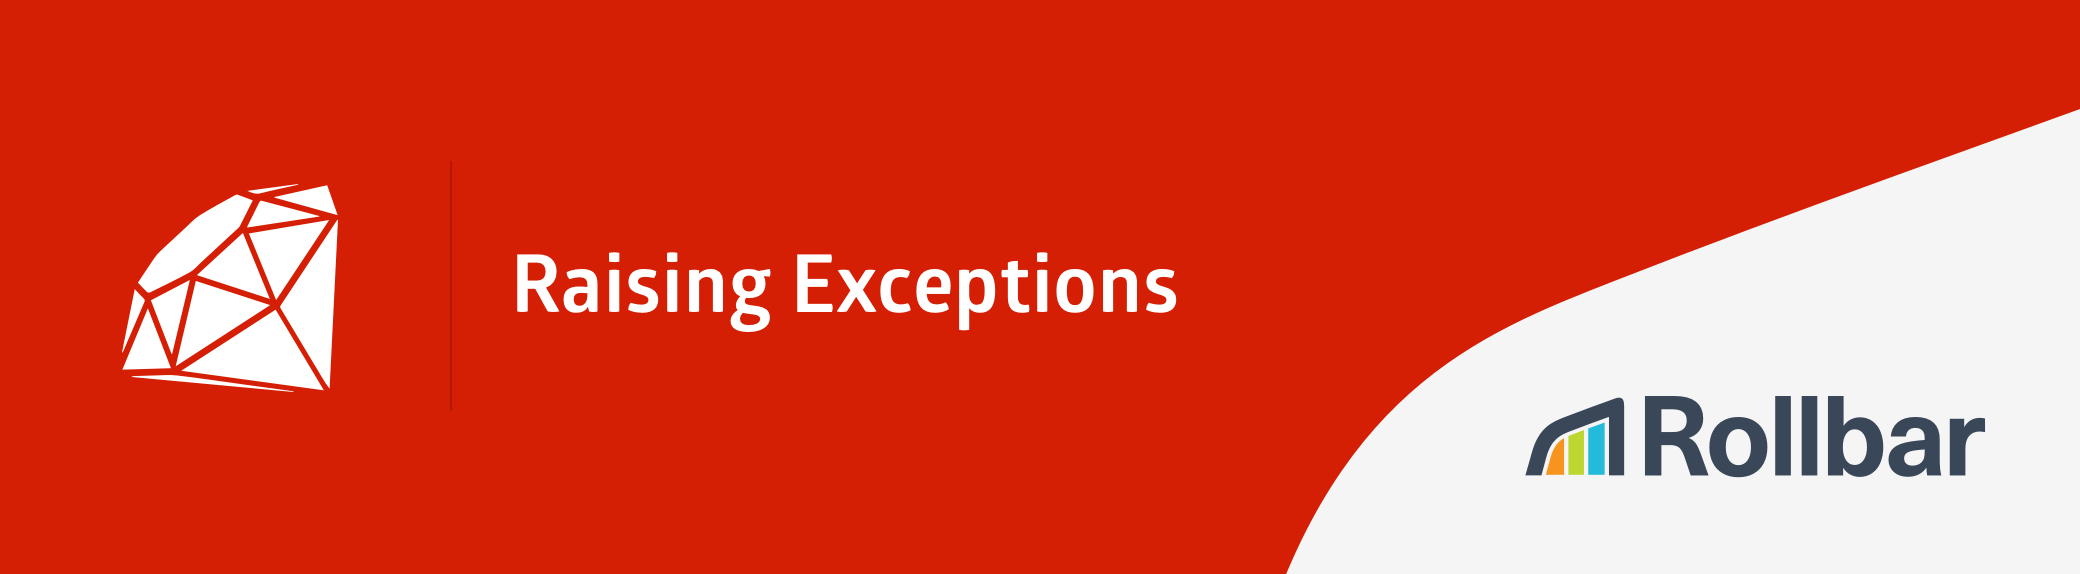 Ruby raising exceptions